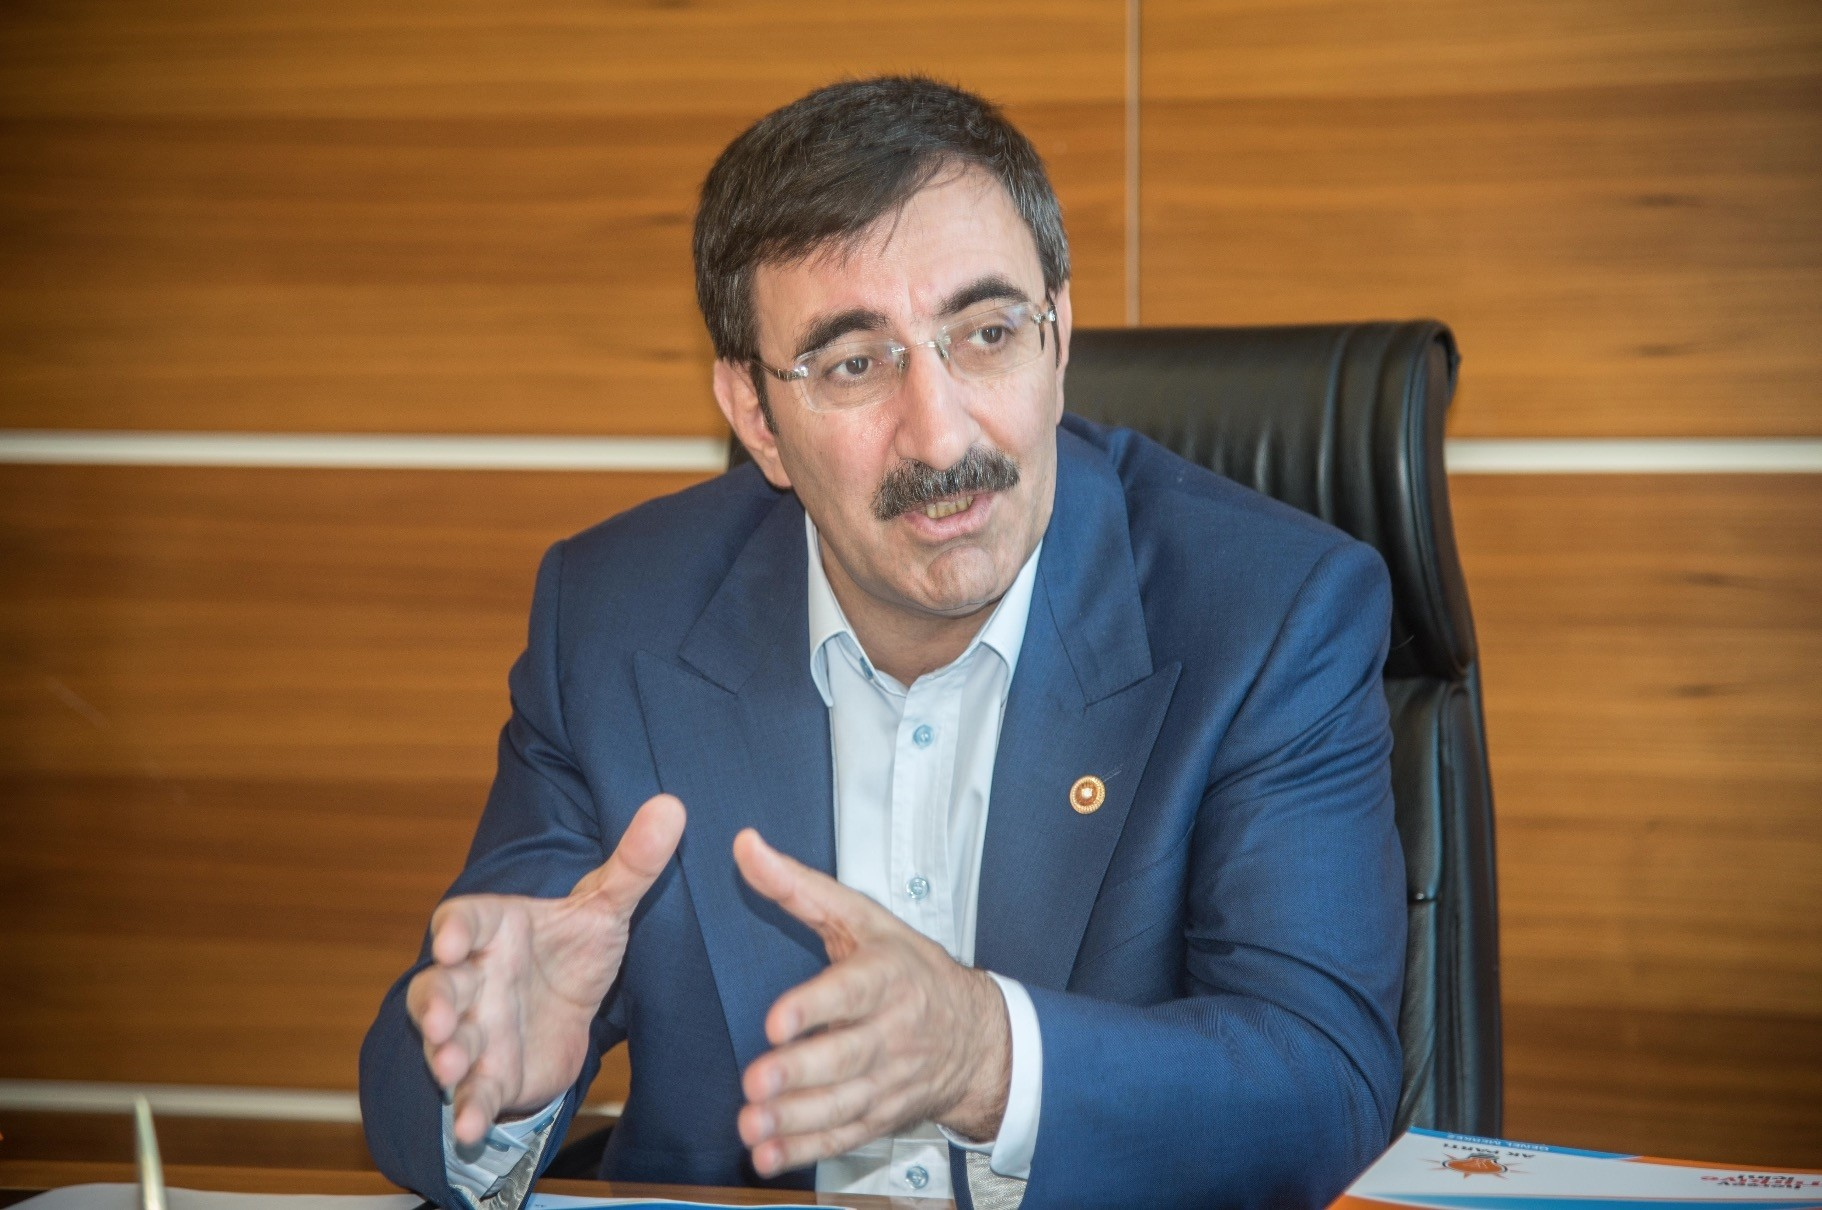 Yu0131lmaz stated that in his opinion, the criticisms towards Turkeyu2019s democracy should be considered as just attempts of defamation, adding that Turkey has never relinquished its democratization vision.